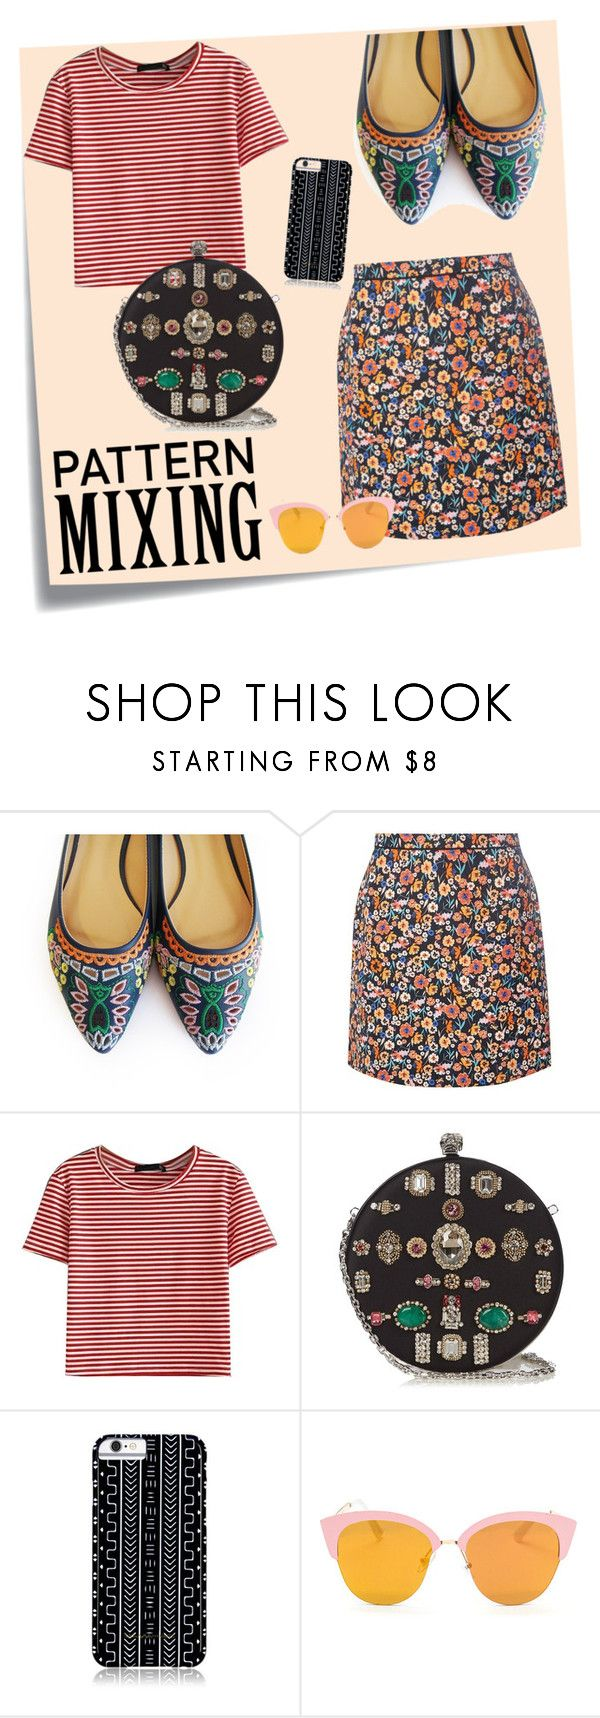 """""""Untitled #422"""" by neflaluna ❤ liked on Polyvore featuring Post-It, Dorothy Perkins, WithChic, Alexander McQueen, Savannah Hayes and patternmixing"""